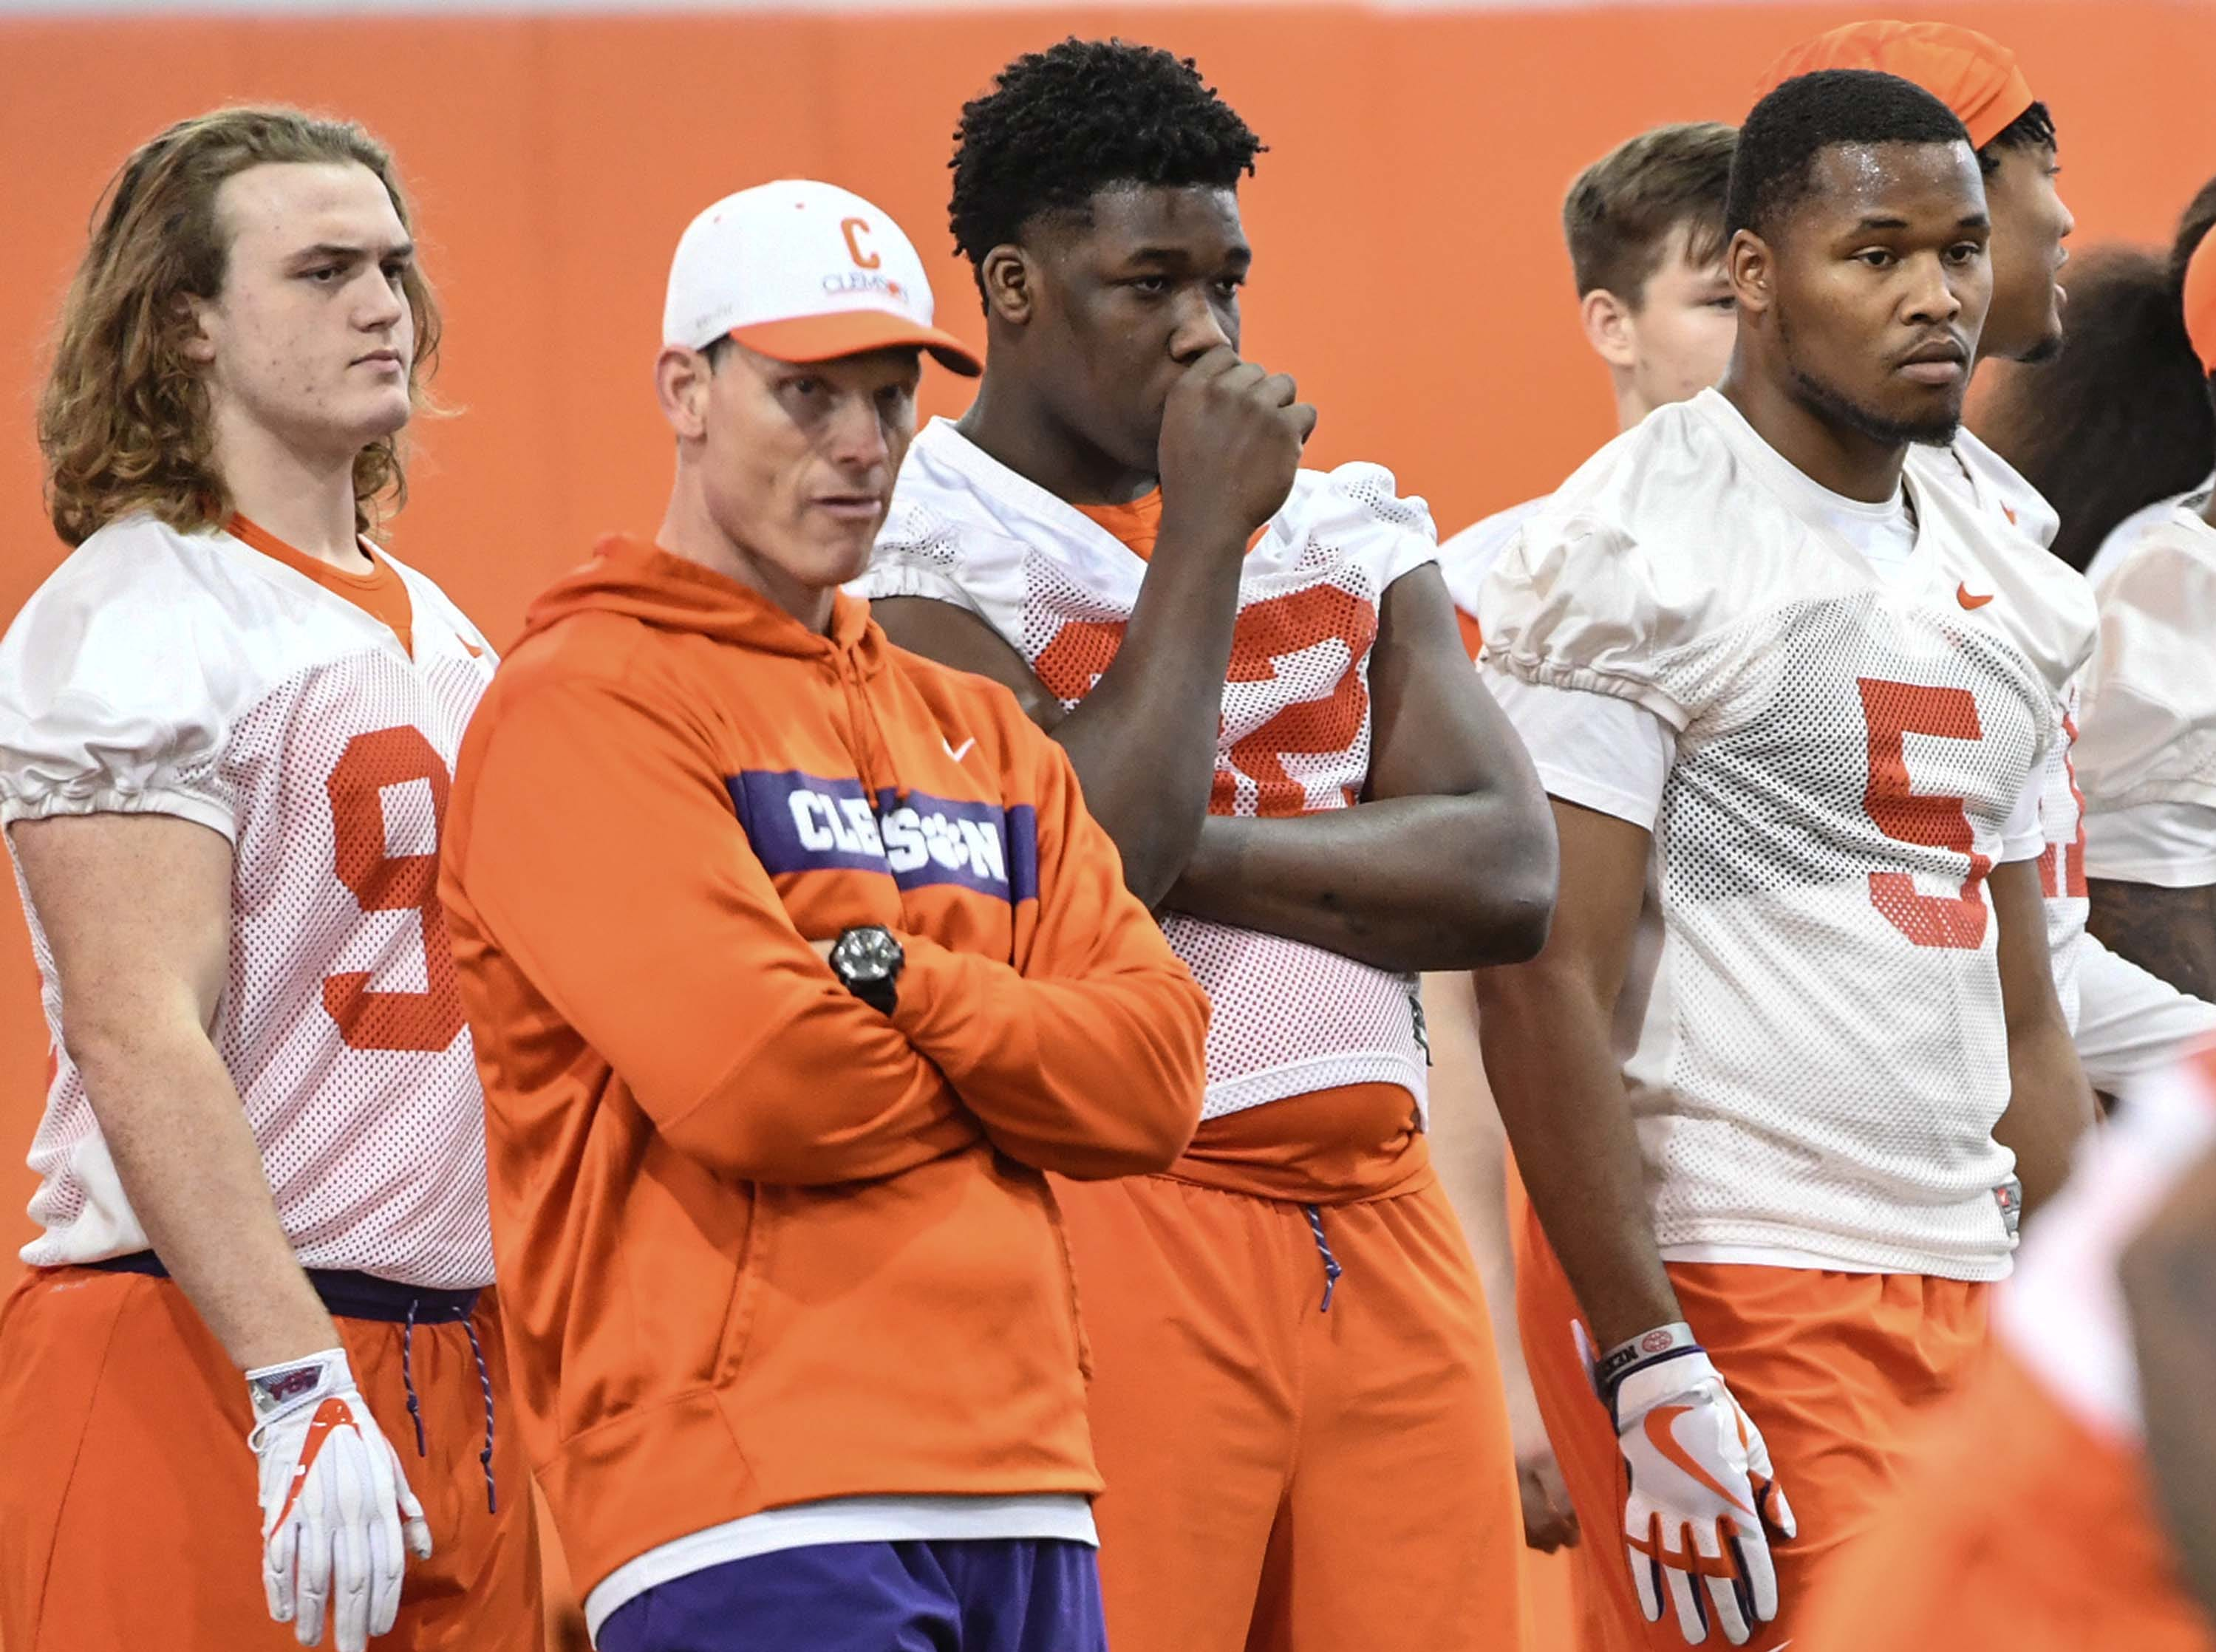 Clemson defensive coordinator Brent Venables, middle, stands with Logan Cash (98), left, and Clemson defensive lineman Etinosa Reuben (32), and Clemson linebacker Shaq Smith (5) during the first practice at the Clemson Indoor Practice Facility in Clemson Wednesday, February 27, 2019.